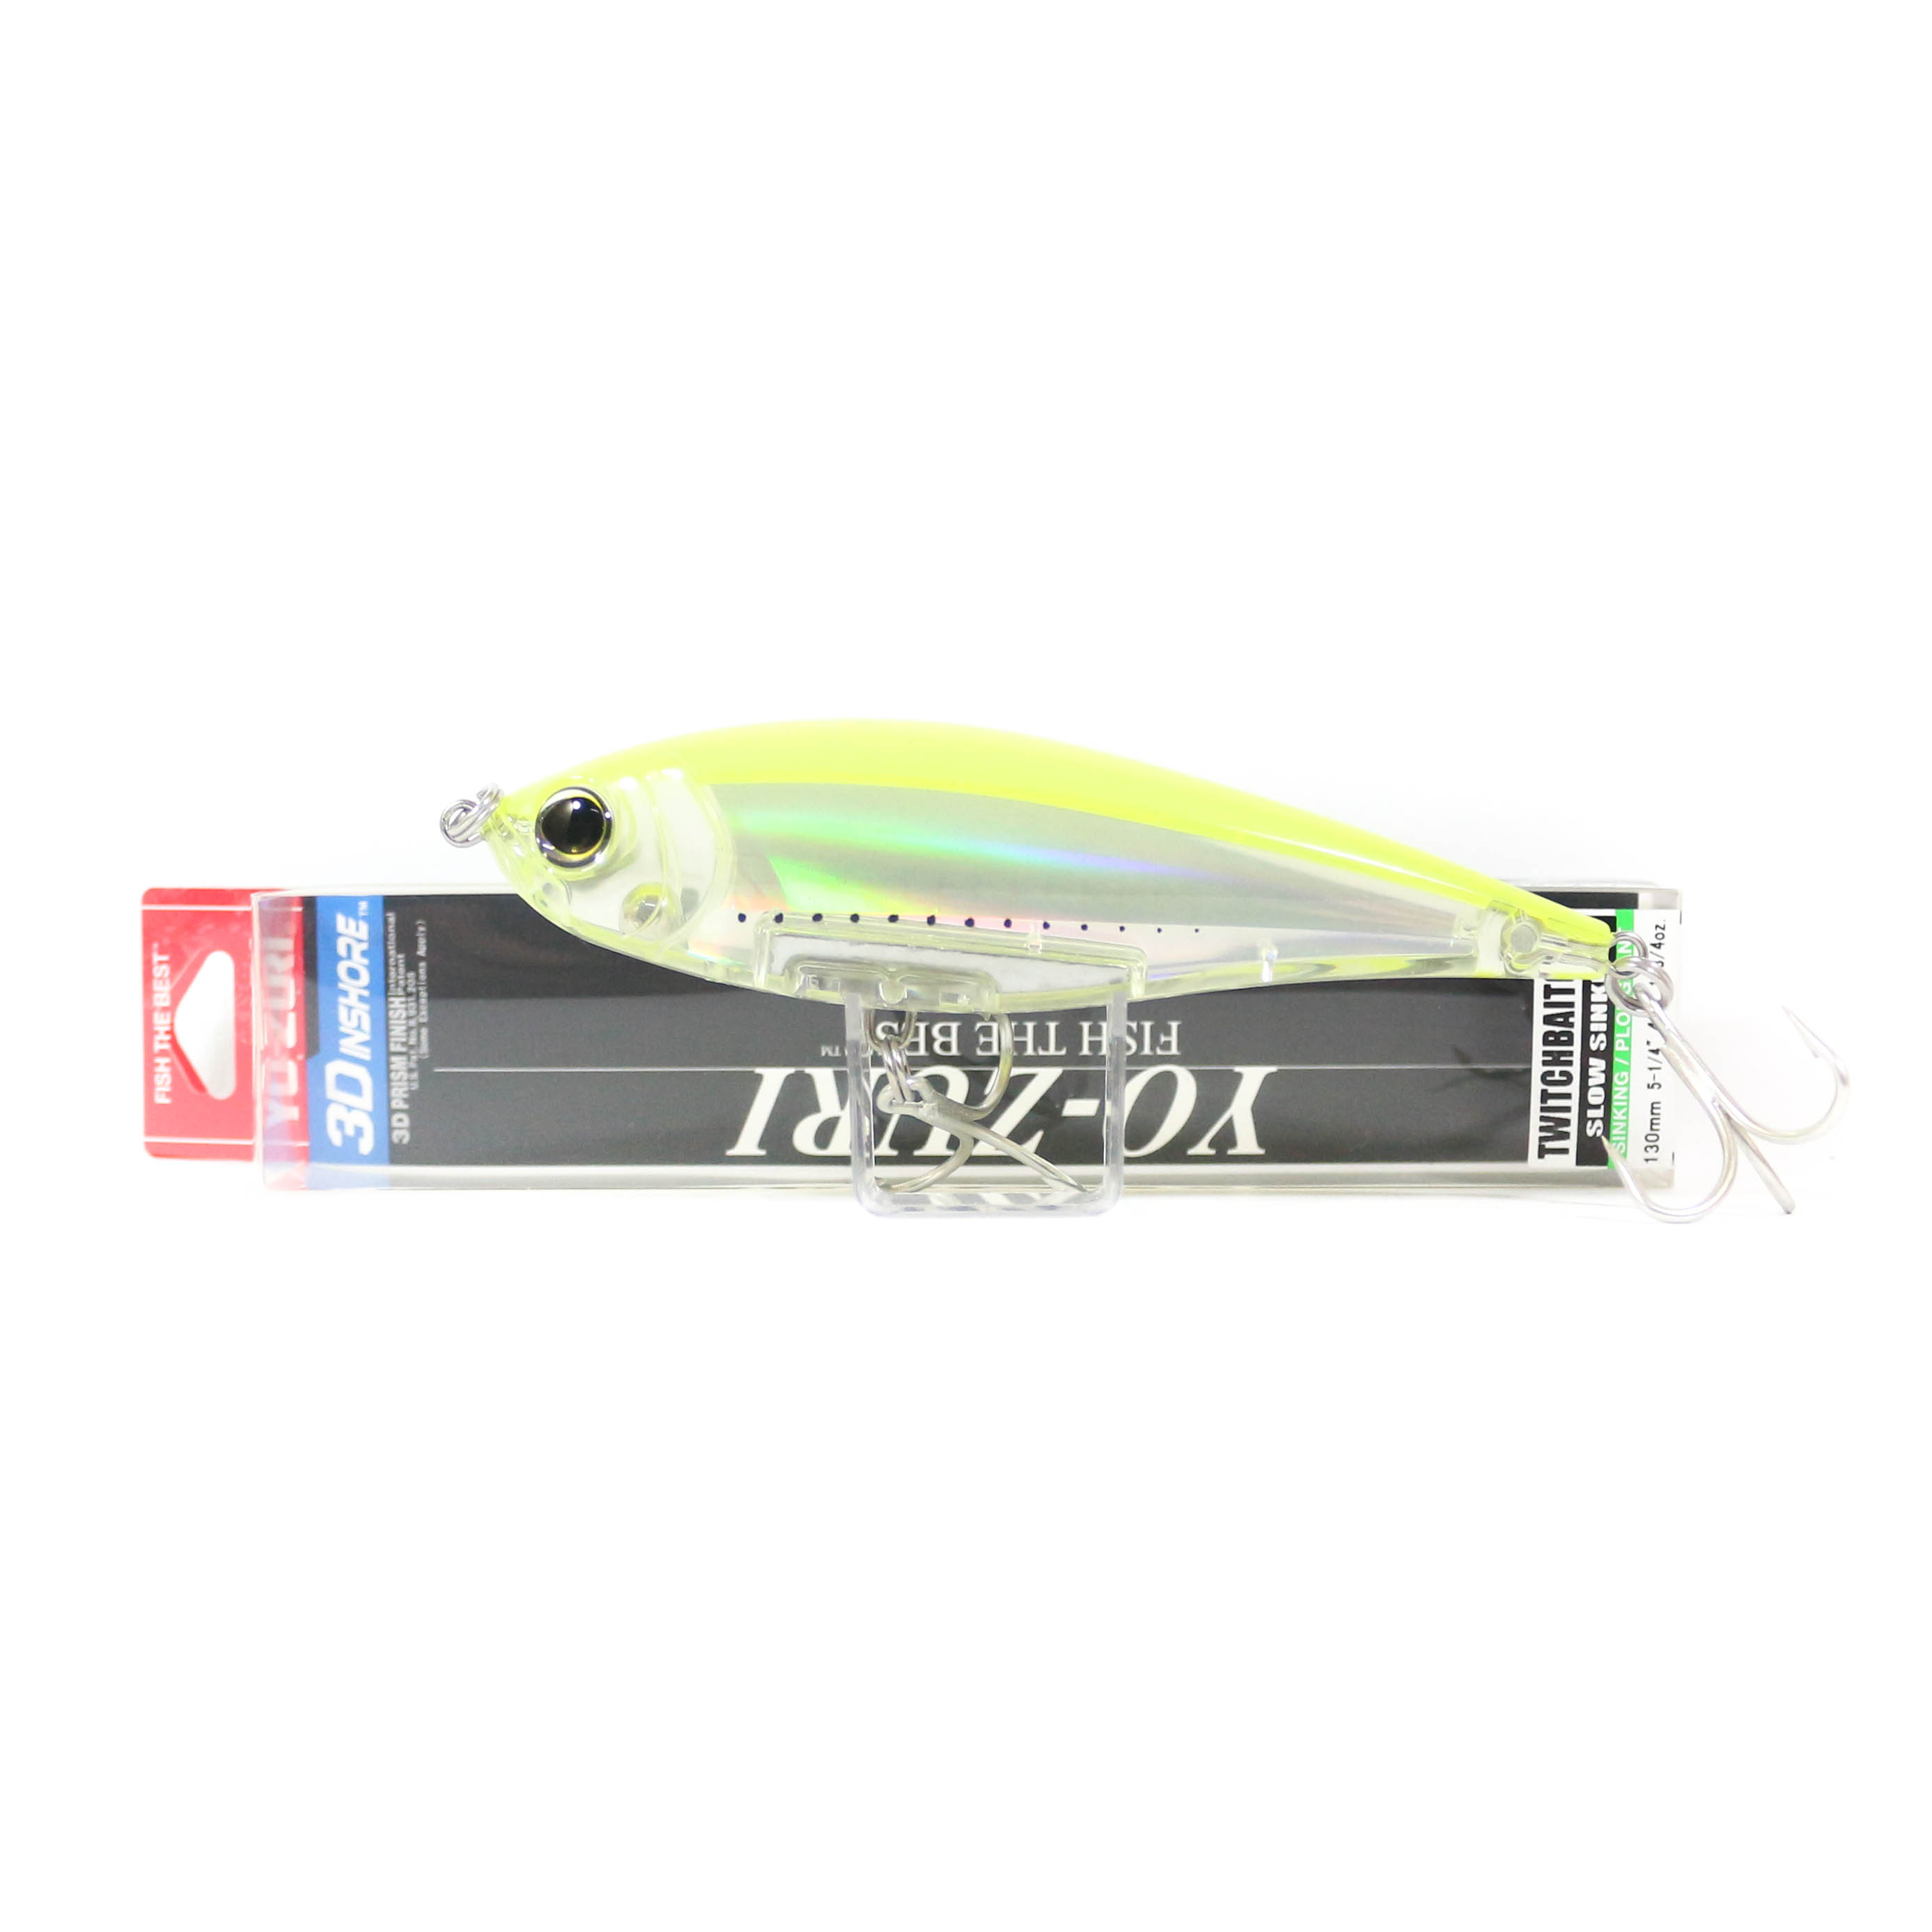 Yo Zuri Duel 3D Inshore Twitchbait 130SS Slow Sinking Lure R1349-GHCS (9465)